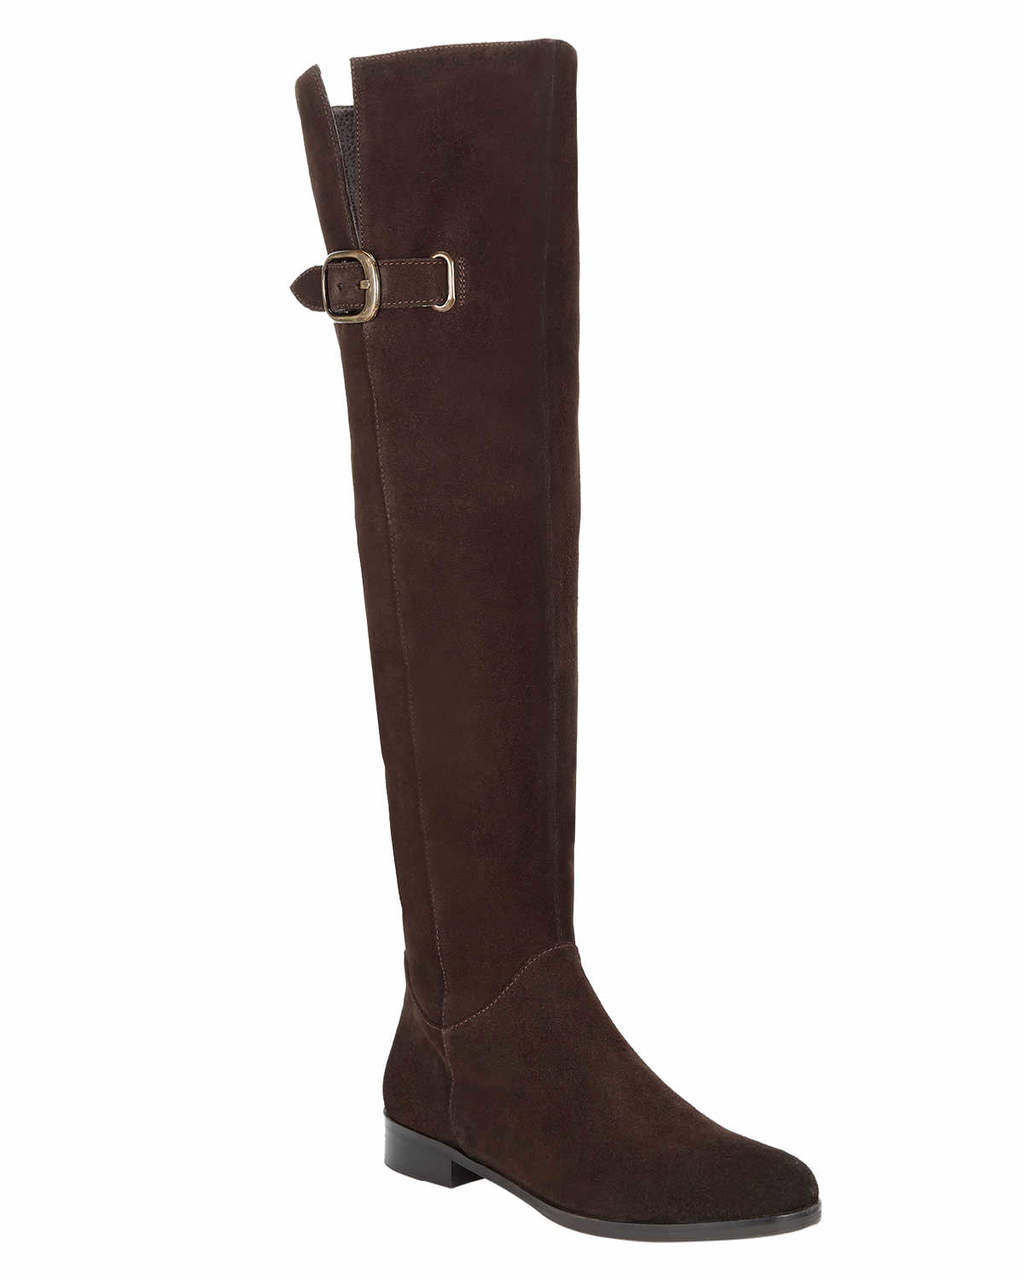 Anna Suede Knee High Boot - predominant colour: black; occasions: casual; material: suede; heel height: flat; heel: standard; toe: round toe; boot length: over the knee; style: standard; finish: plain; pattern: plain; wardrobe: investment; season: a/w 2016